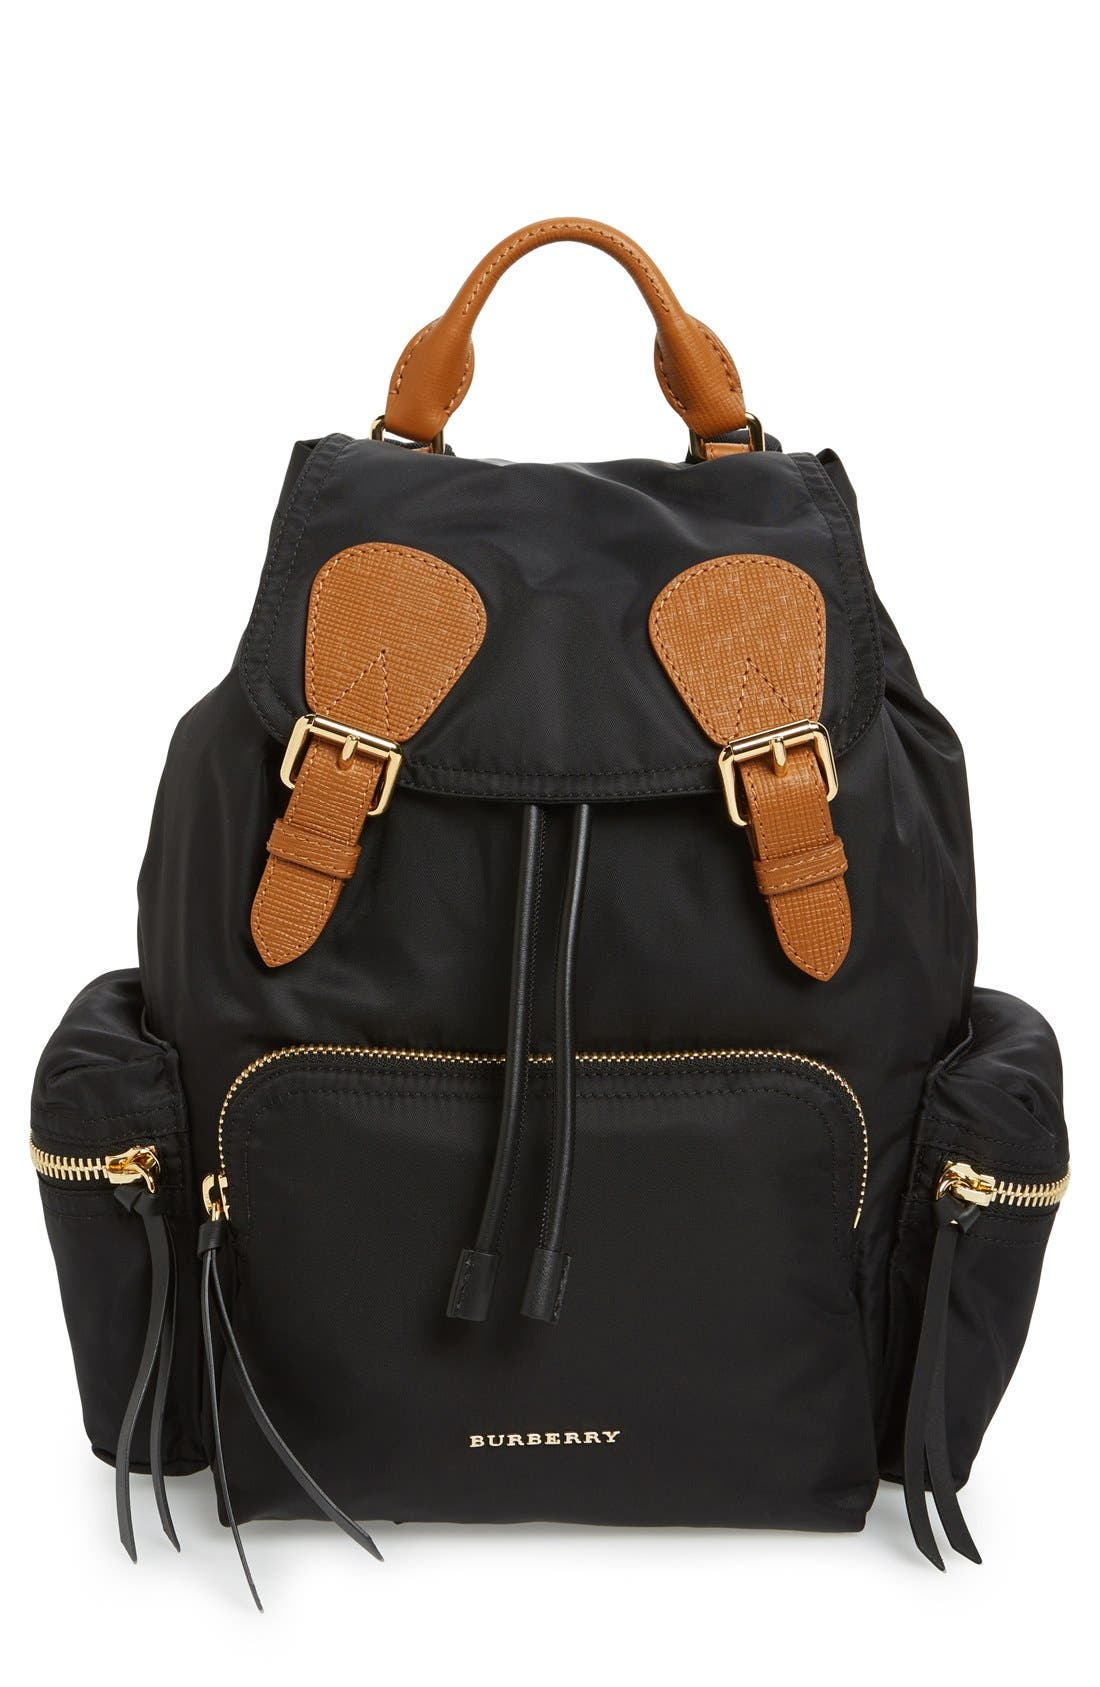 Burberry Medium Runway Rucksack Nylon Backpack Nordstrom